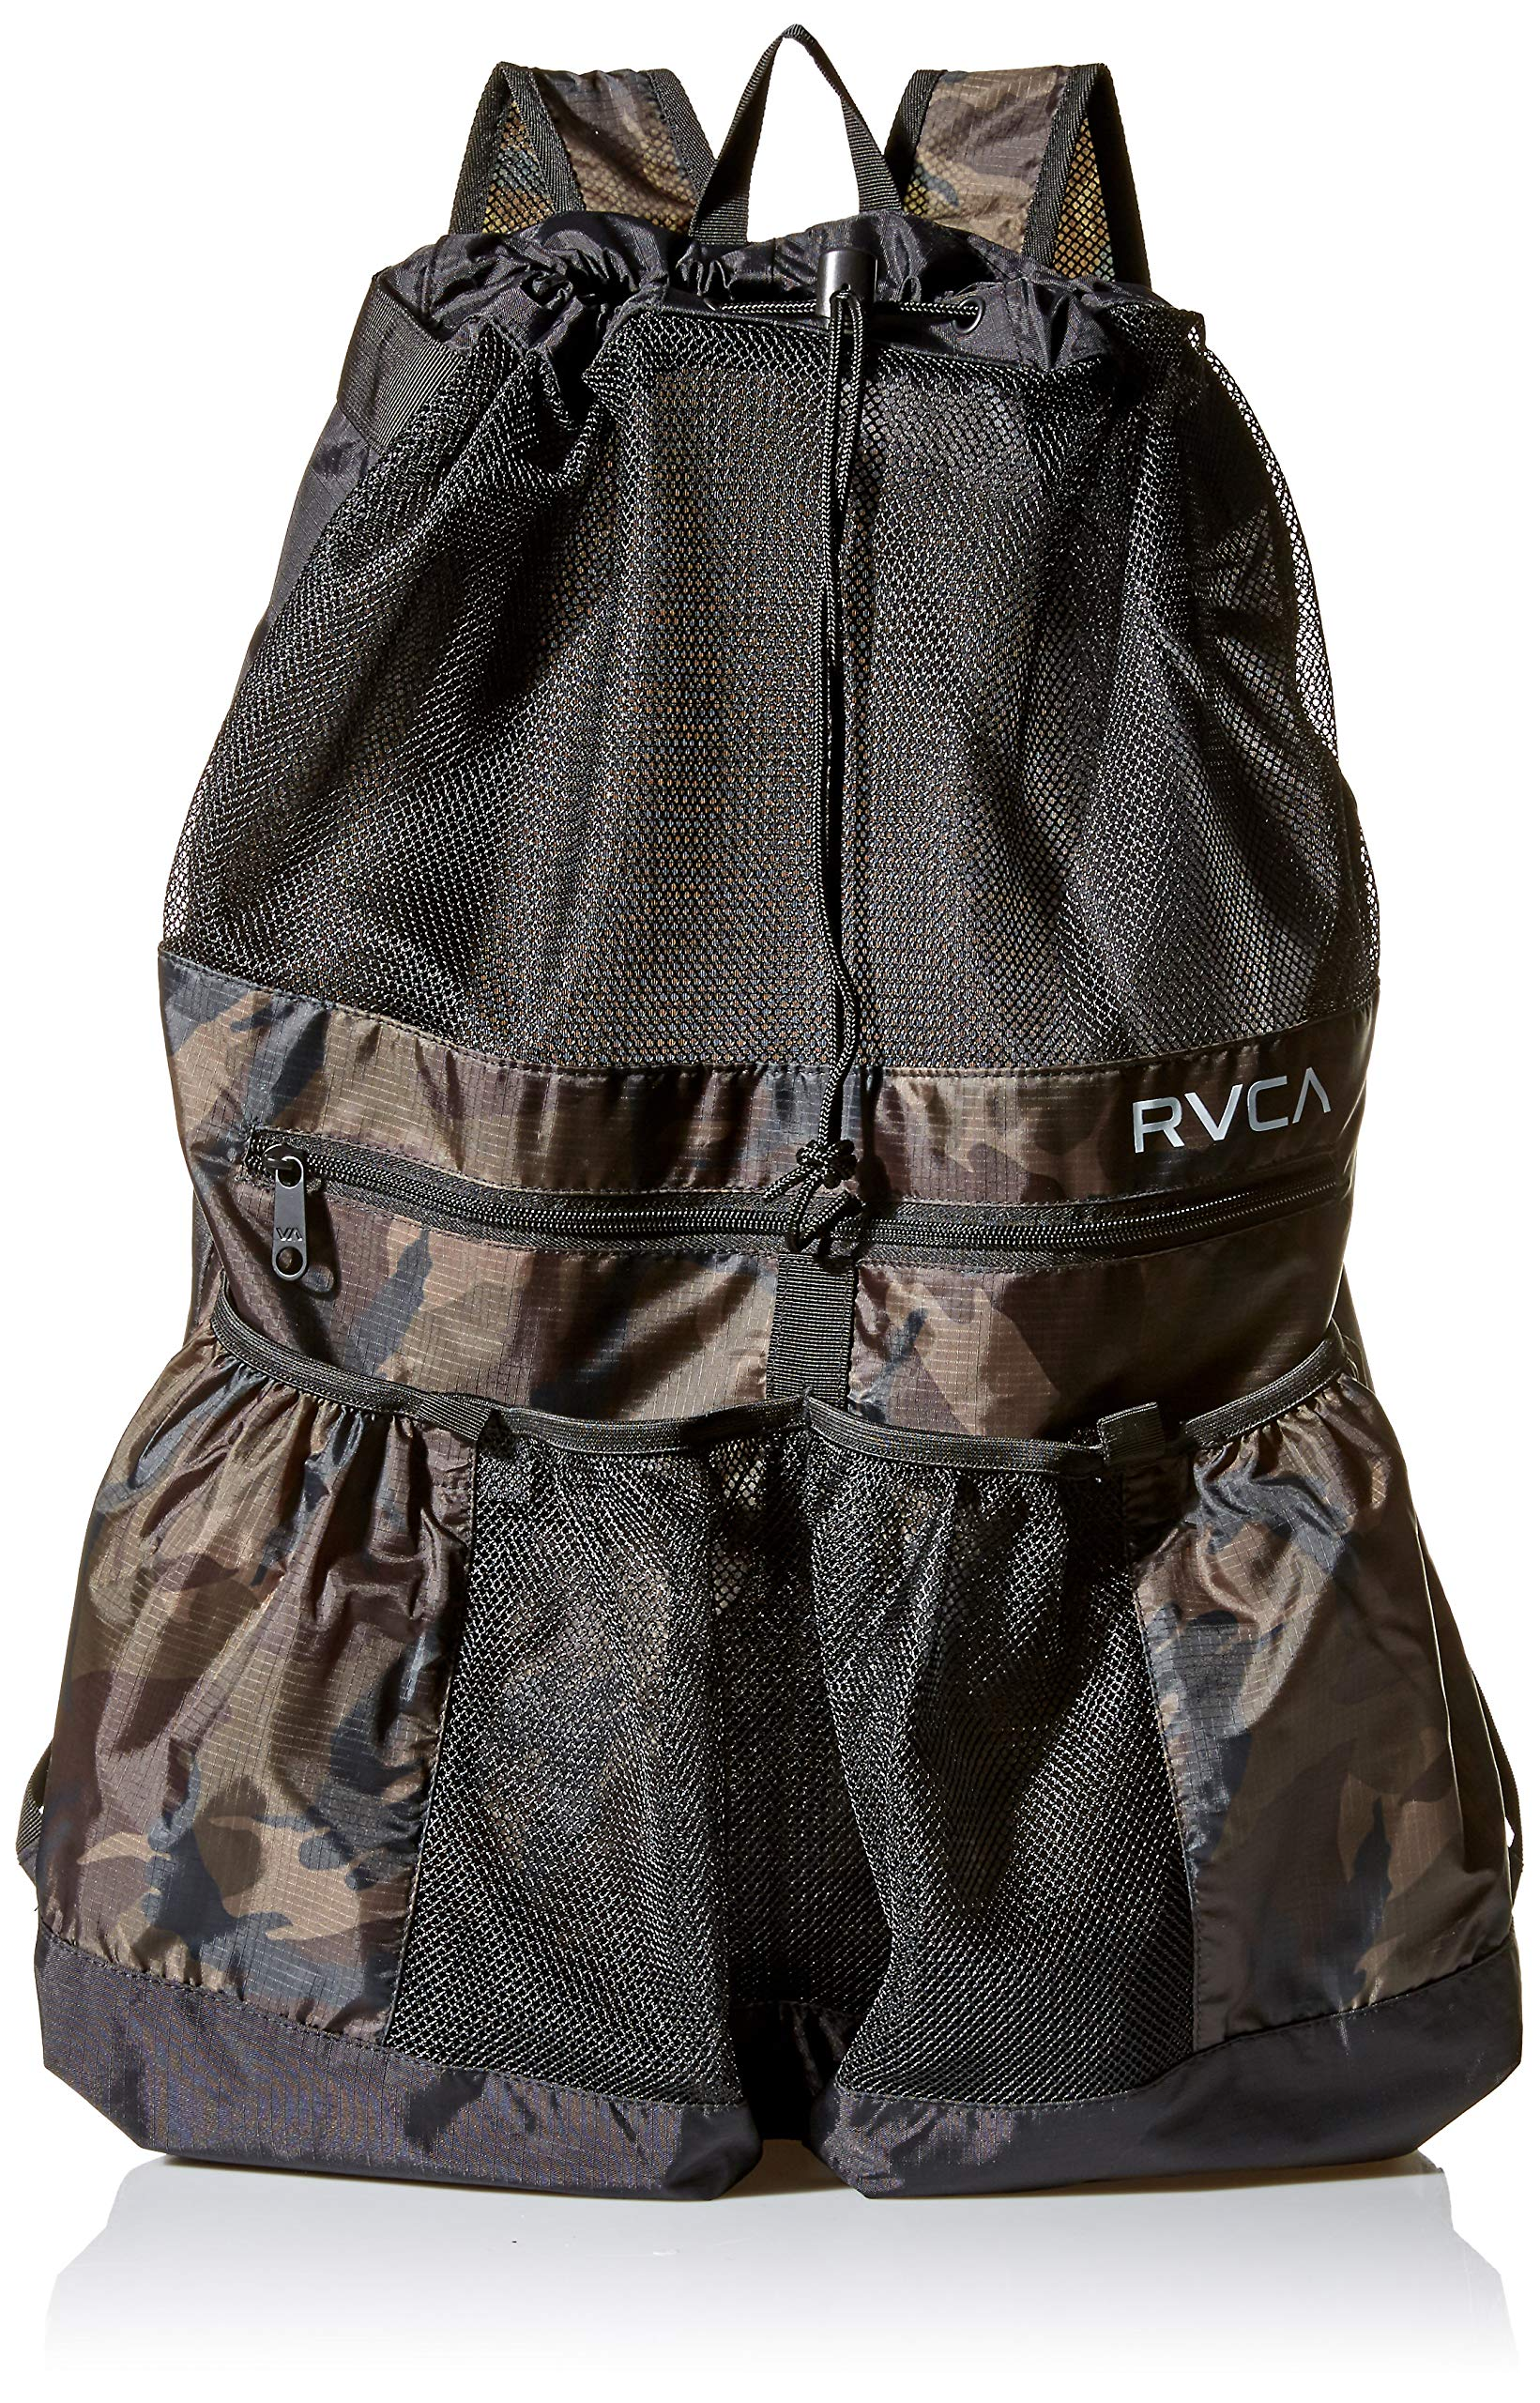 RVCA Men's Drawcord Backpack, camo, One Size